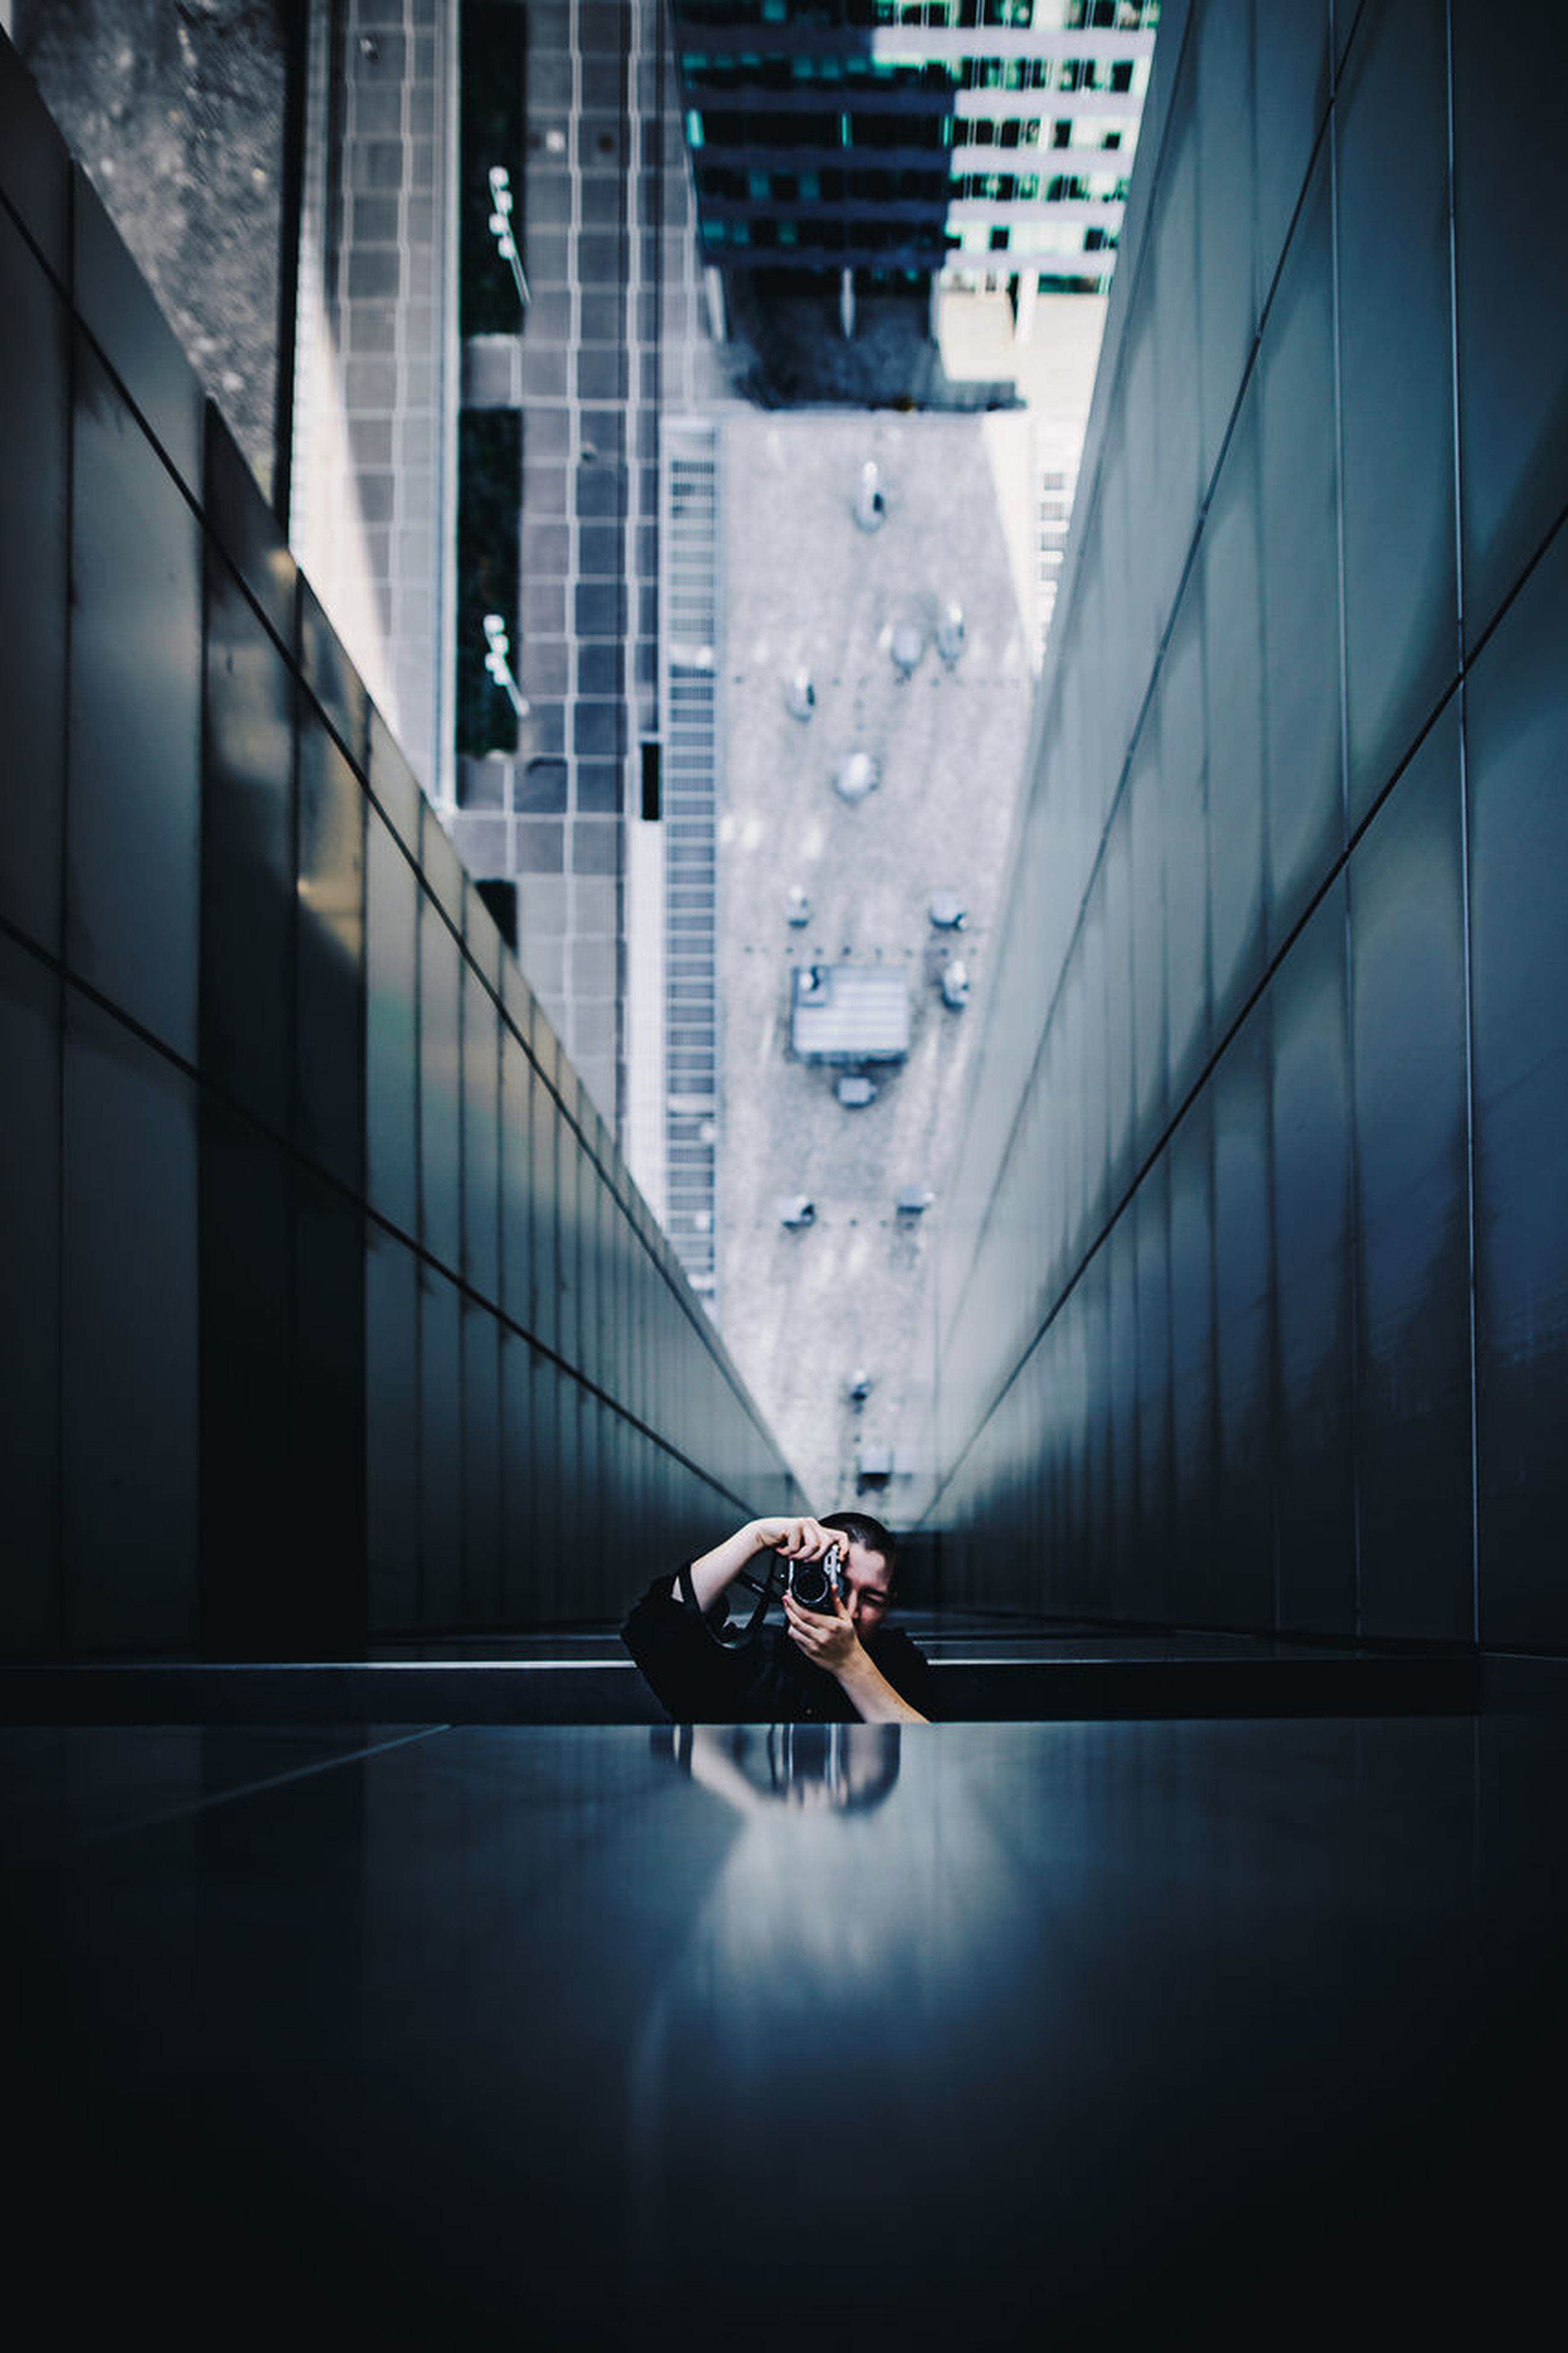 architecture, reflection, real people, built structure, building exterior, one person, window, full length, day, city, men, skyscraper, indoors, modern, women, people